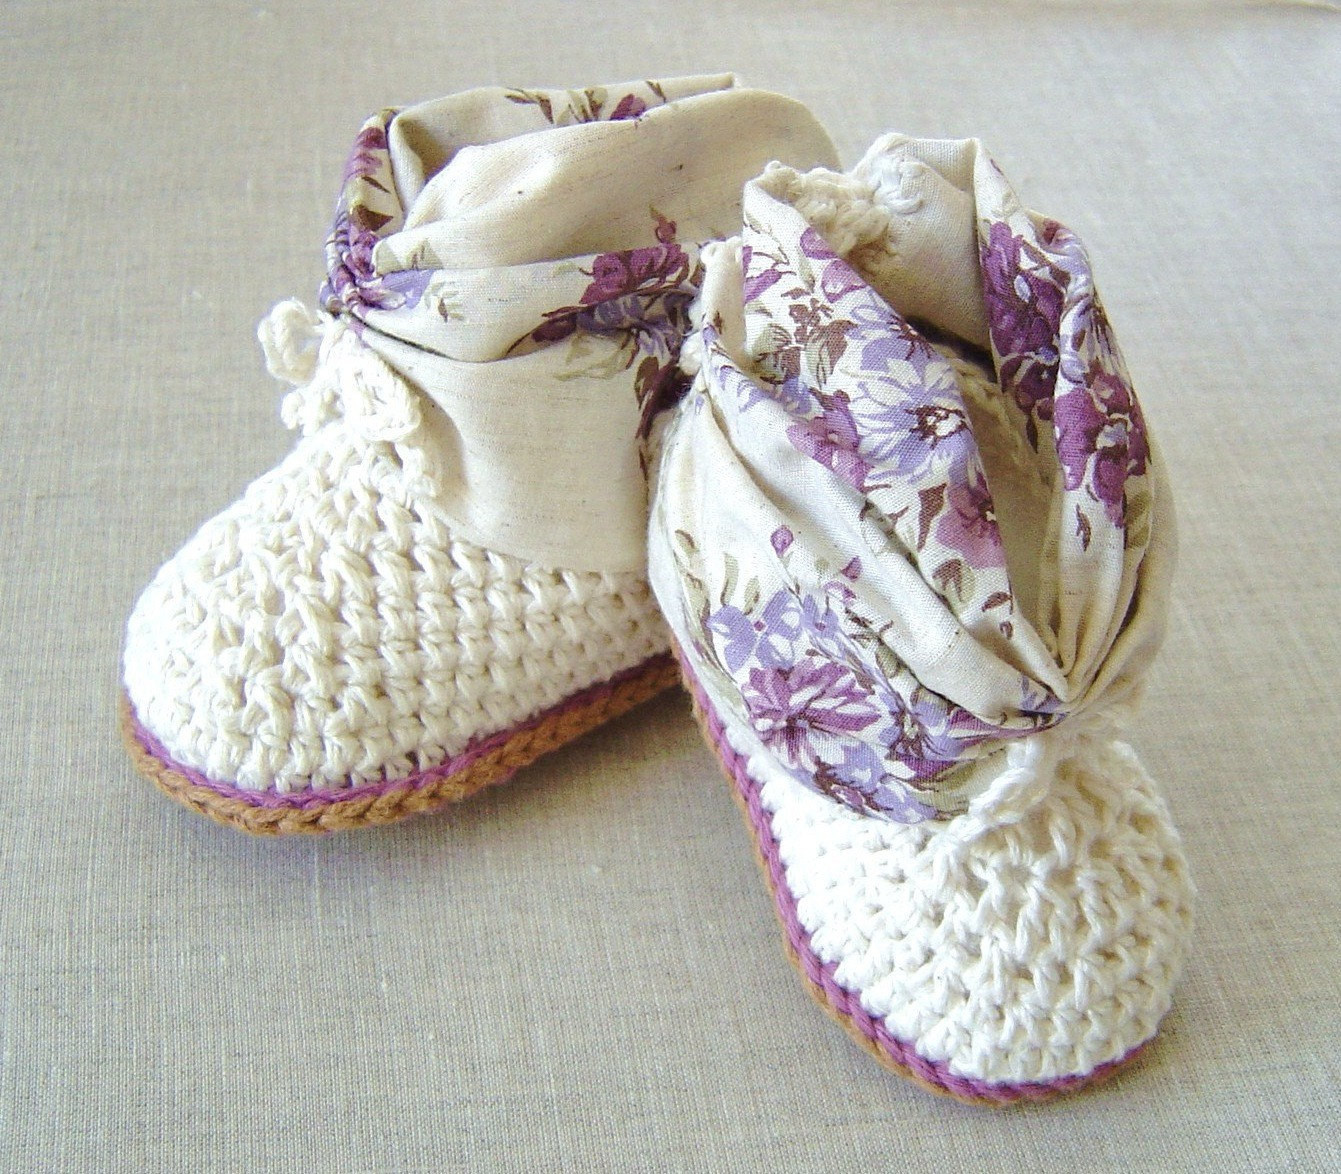 Crochet Baby Booties Awesome Crochet Pattern Baby Booties Baby Shoes Crochet Pattern Photo Of Crochet Baby Booties Fresh Crochet Baby Mary Jane Booties Free Patterns